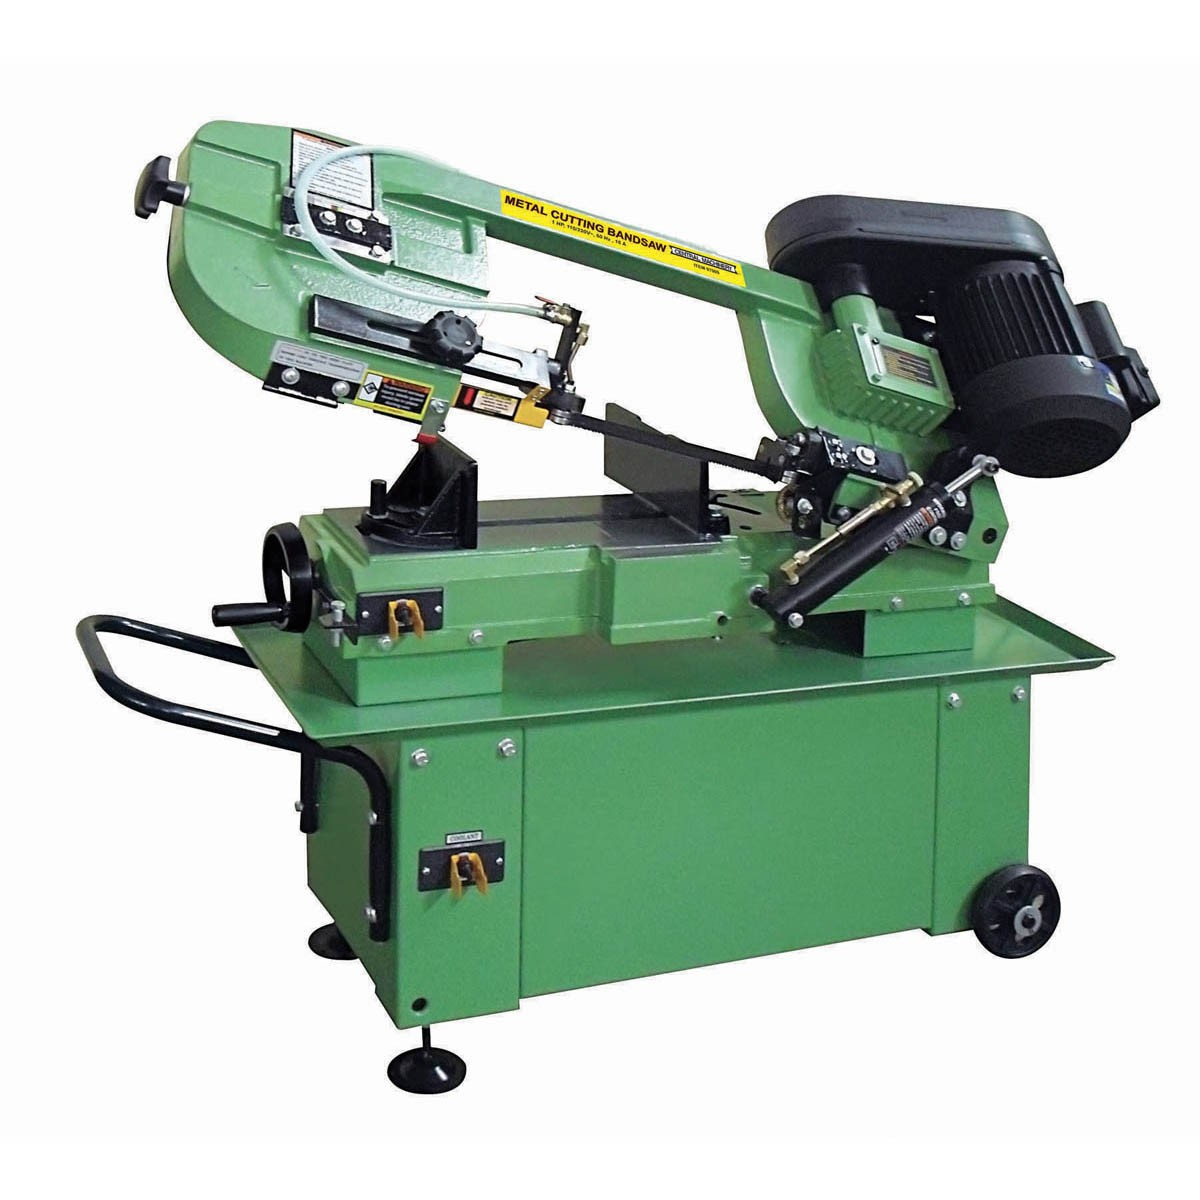 1 HP 7 In. x 12 In. Hydraulic Feed Metal Cutting Band Saw by